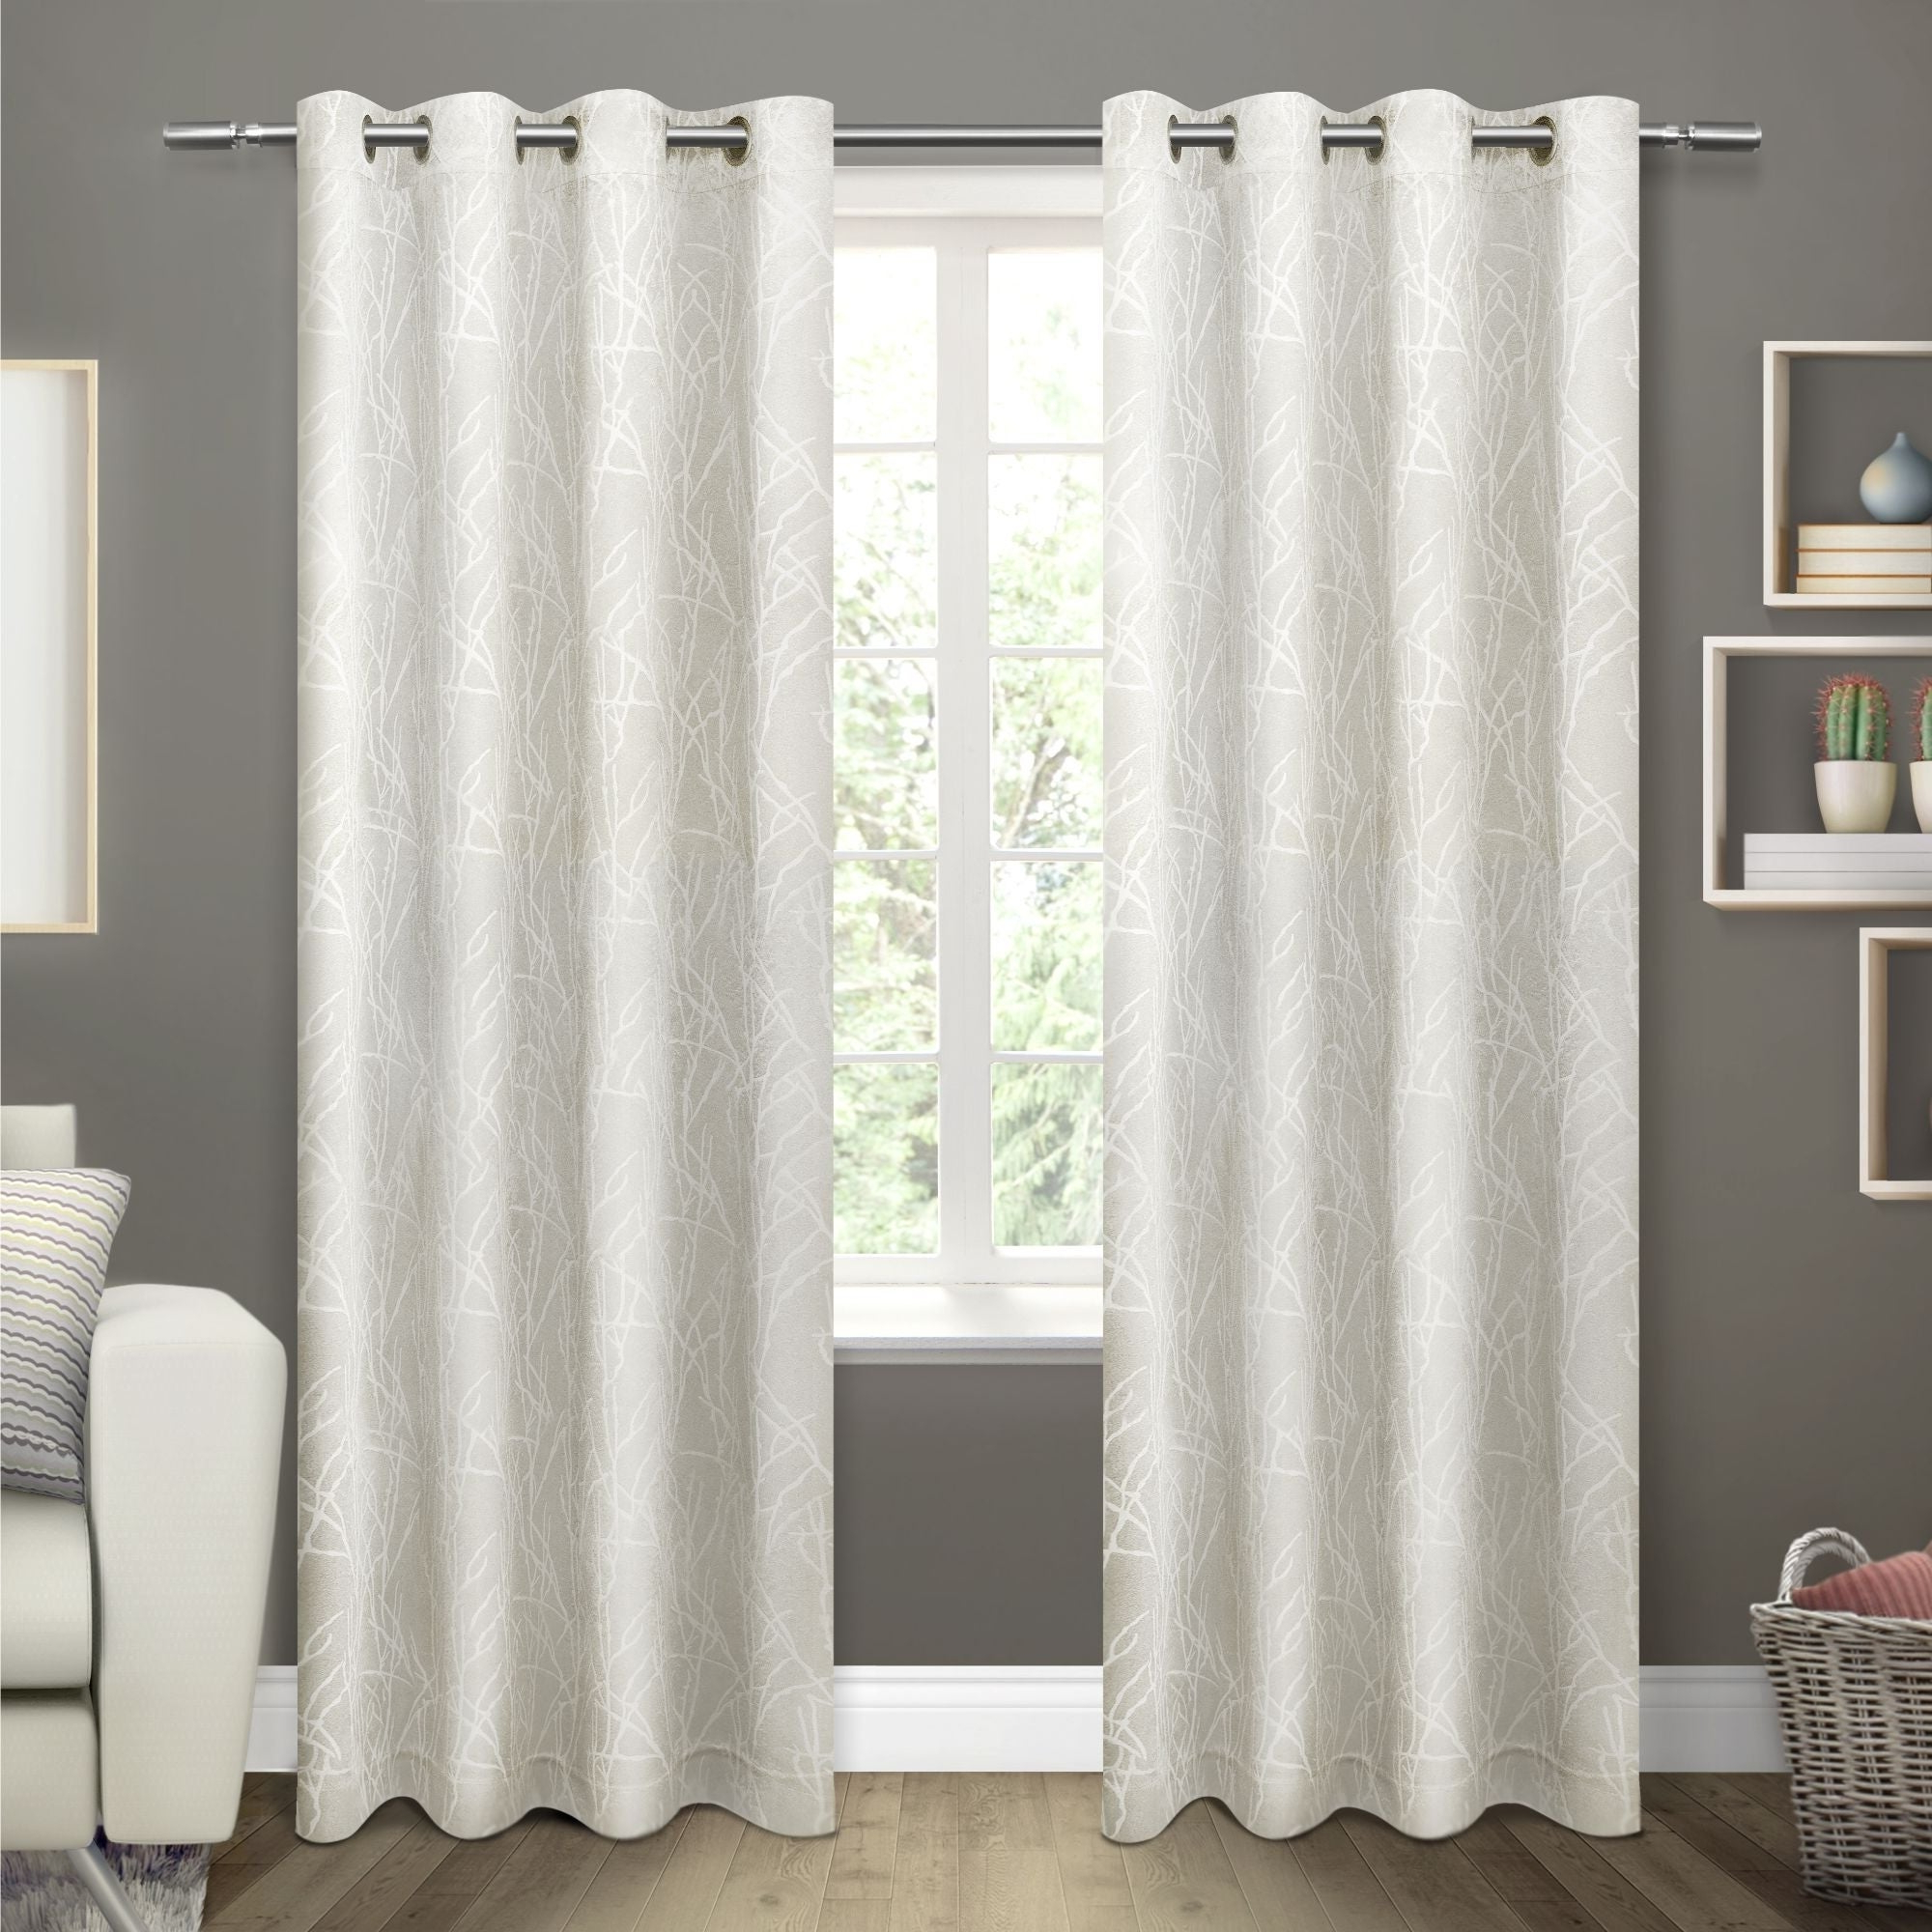 Ati Home Twig Insulated Blackout Curtain Panel Pair With Grommet Top In Current Gracewood Hollow Tucakovic Energy Efficient Fabric Blackout Curtains (View 17 of 20)